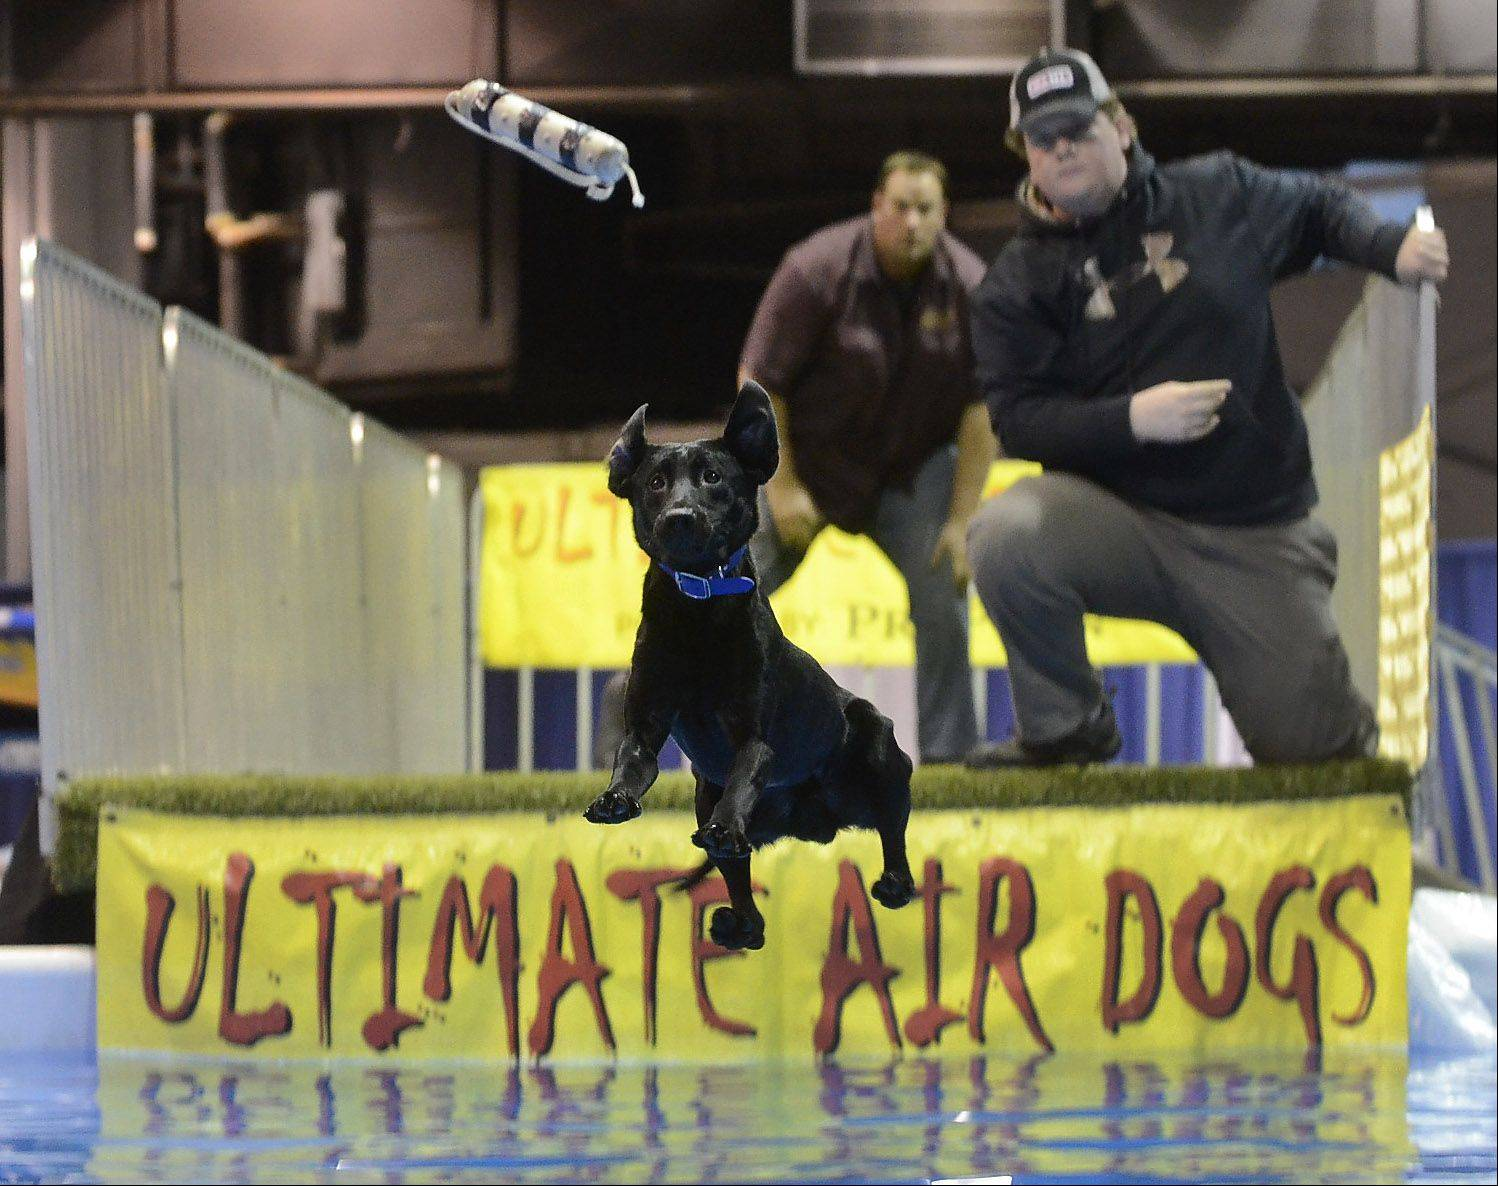 Ice, a black lab, goes airborne as part of an exhibition Friday by Ultimate Air Dogs at the 28th Annual Chicago Outdoor Sports Show at the Donald E. Stephens Convention Center in Rosemont. Ice�s owner, Brian Butler, is on the right.